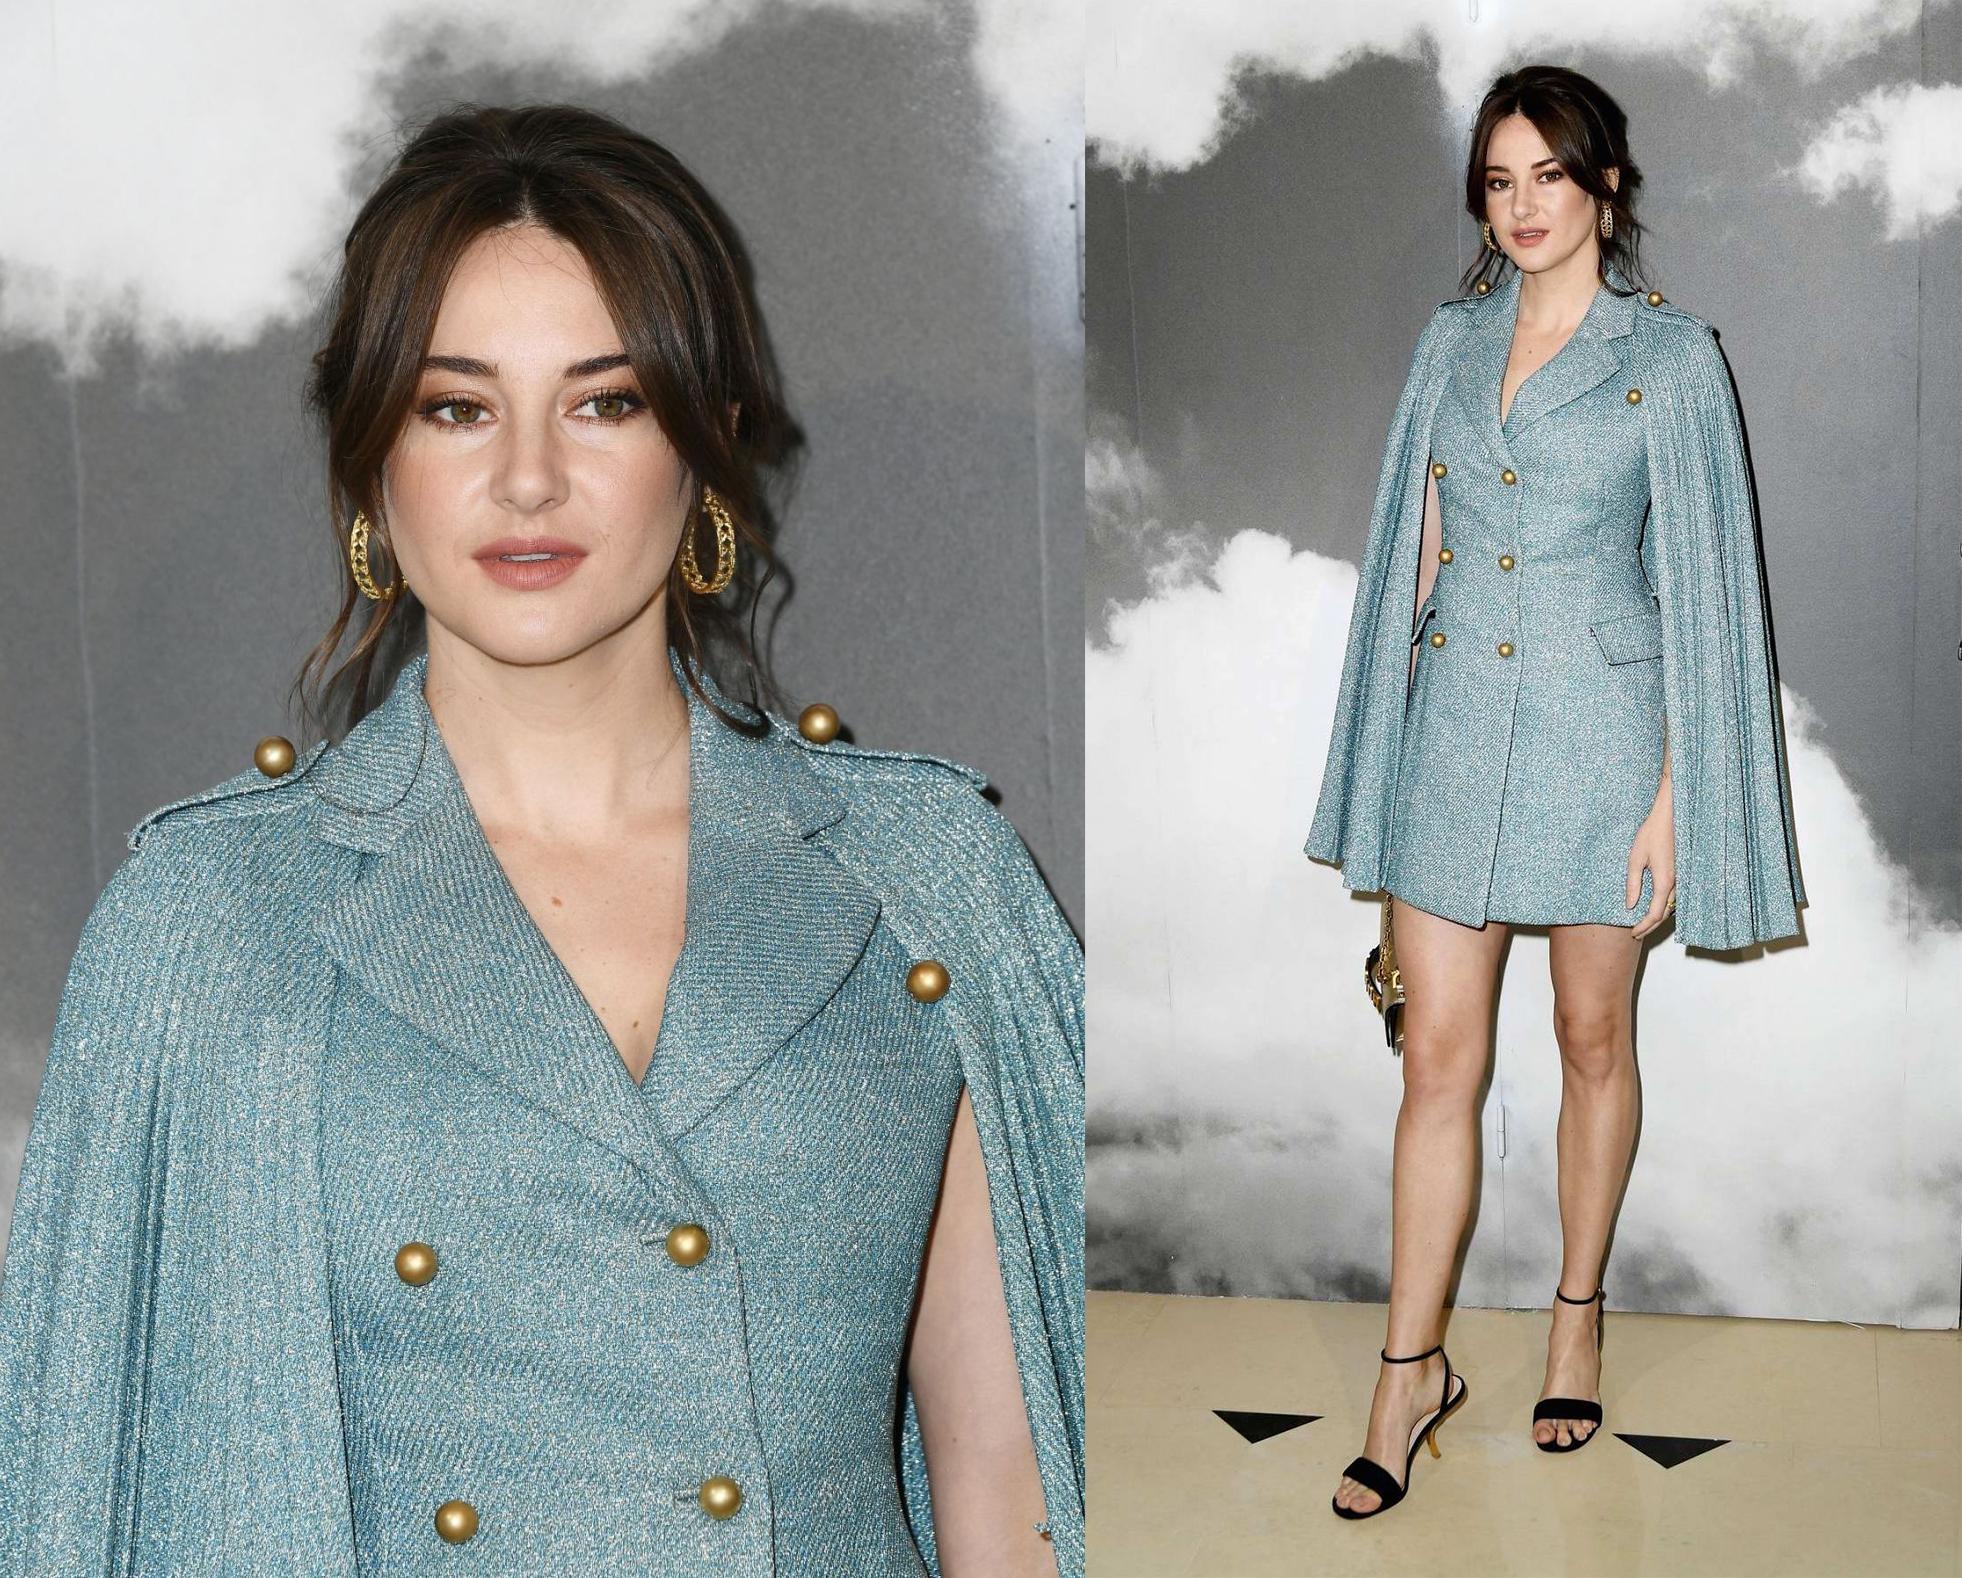 shailene-woodley-at-christian-dior-haute-couture-show-at-paris-fashon-week-07-01-2019-12 copy.jpg